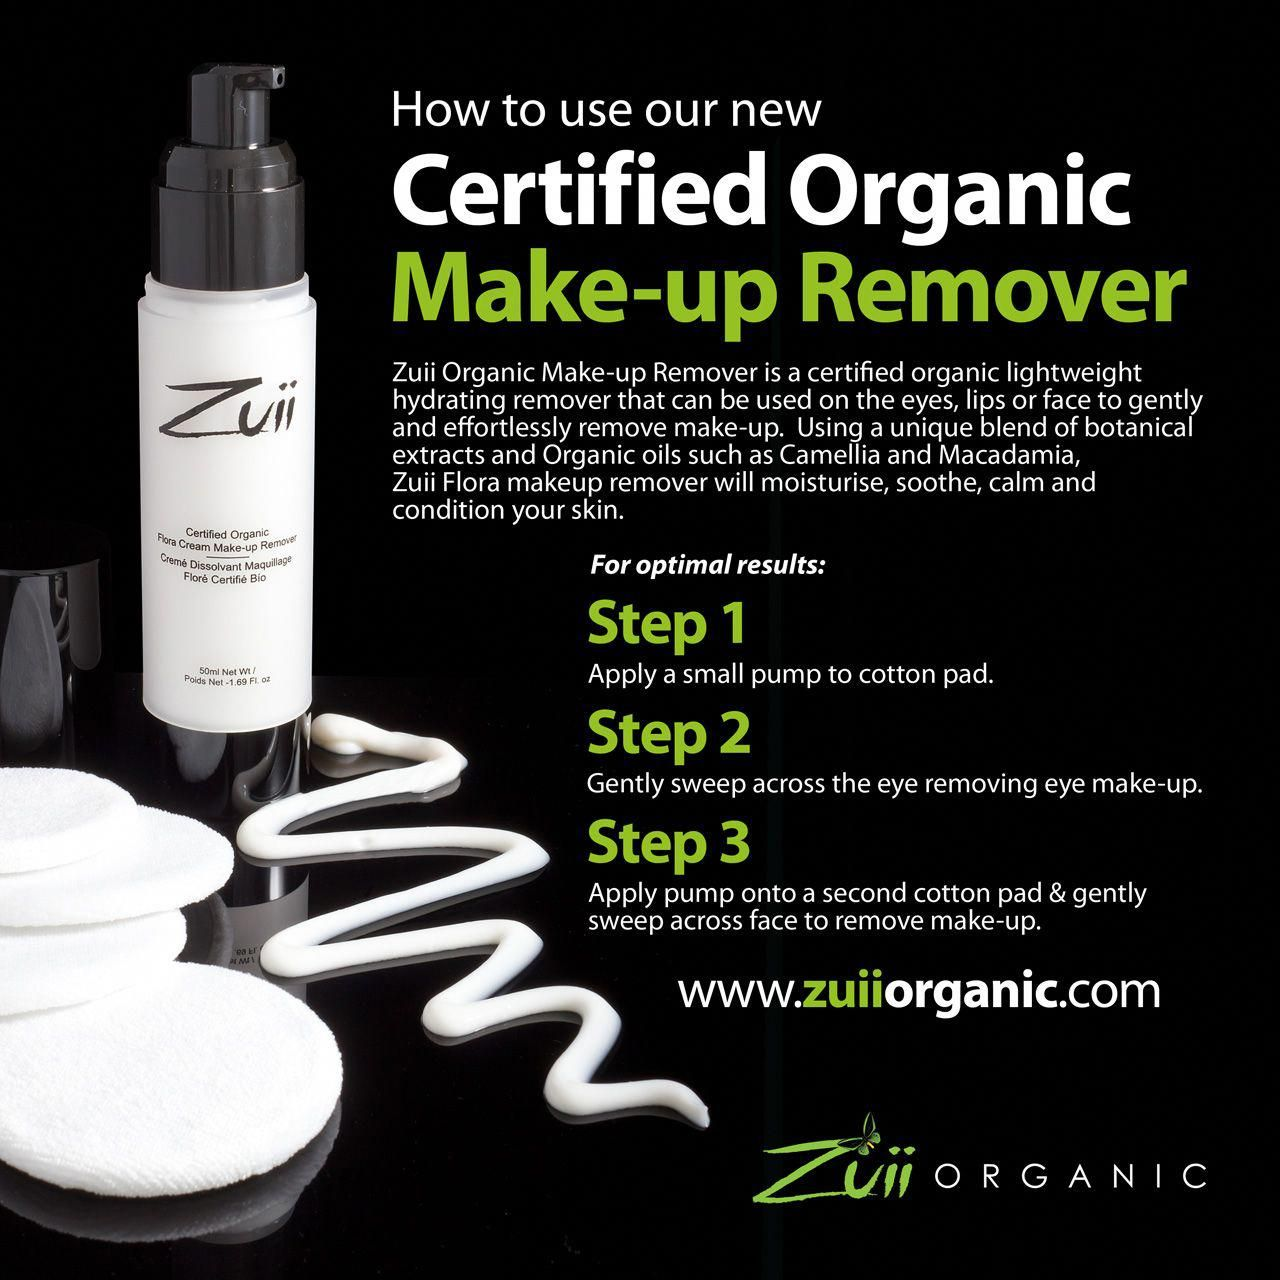 Zuii Organic Makeup Remover does wonders for the skin